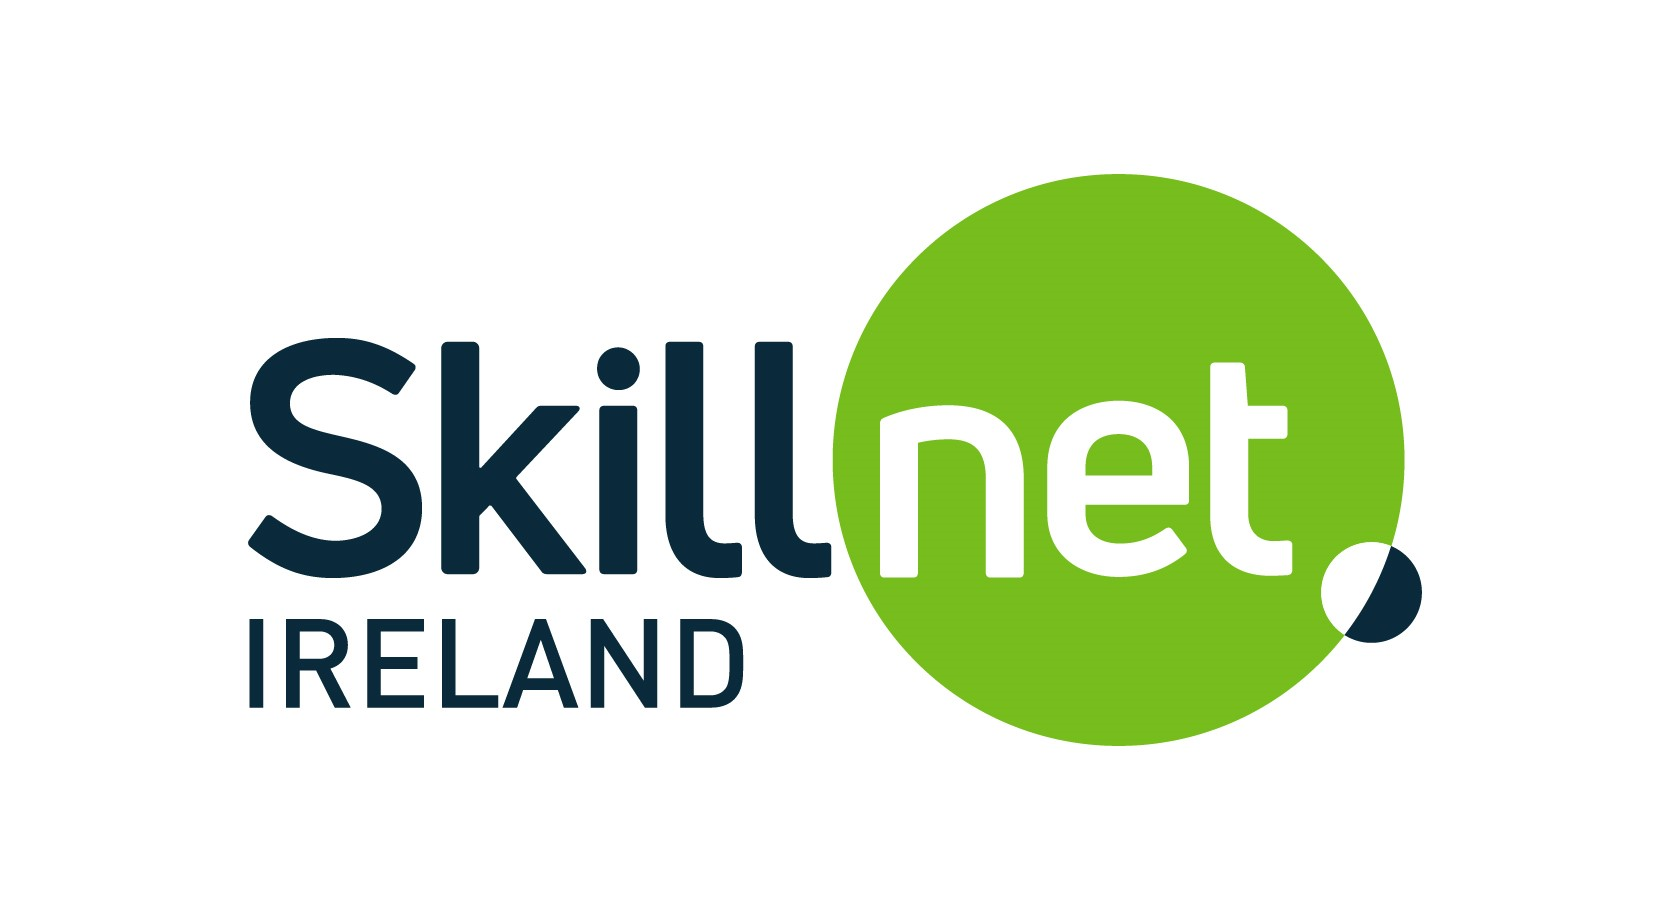 Skillnet Ireland - Skillnet Ireland is a national agency dedicated to the promotion and facilitation of workforce learning in Ireland. We believe that maintaining a highly skilled workforce is essential to our national competitiveness. Our business is to ensure that your business has the skills it needs to thrive. We currently support over 16,000 companies nationwide and provide a wide range of valuable learning experiences to over 55,000 trainees. Our mission is to facilitate increased participation in enterprise training and workforce learning in Ireland.